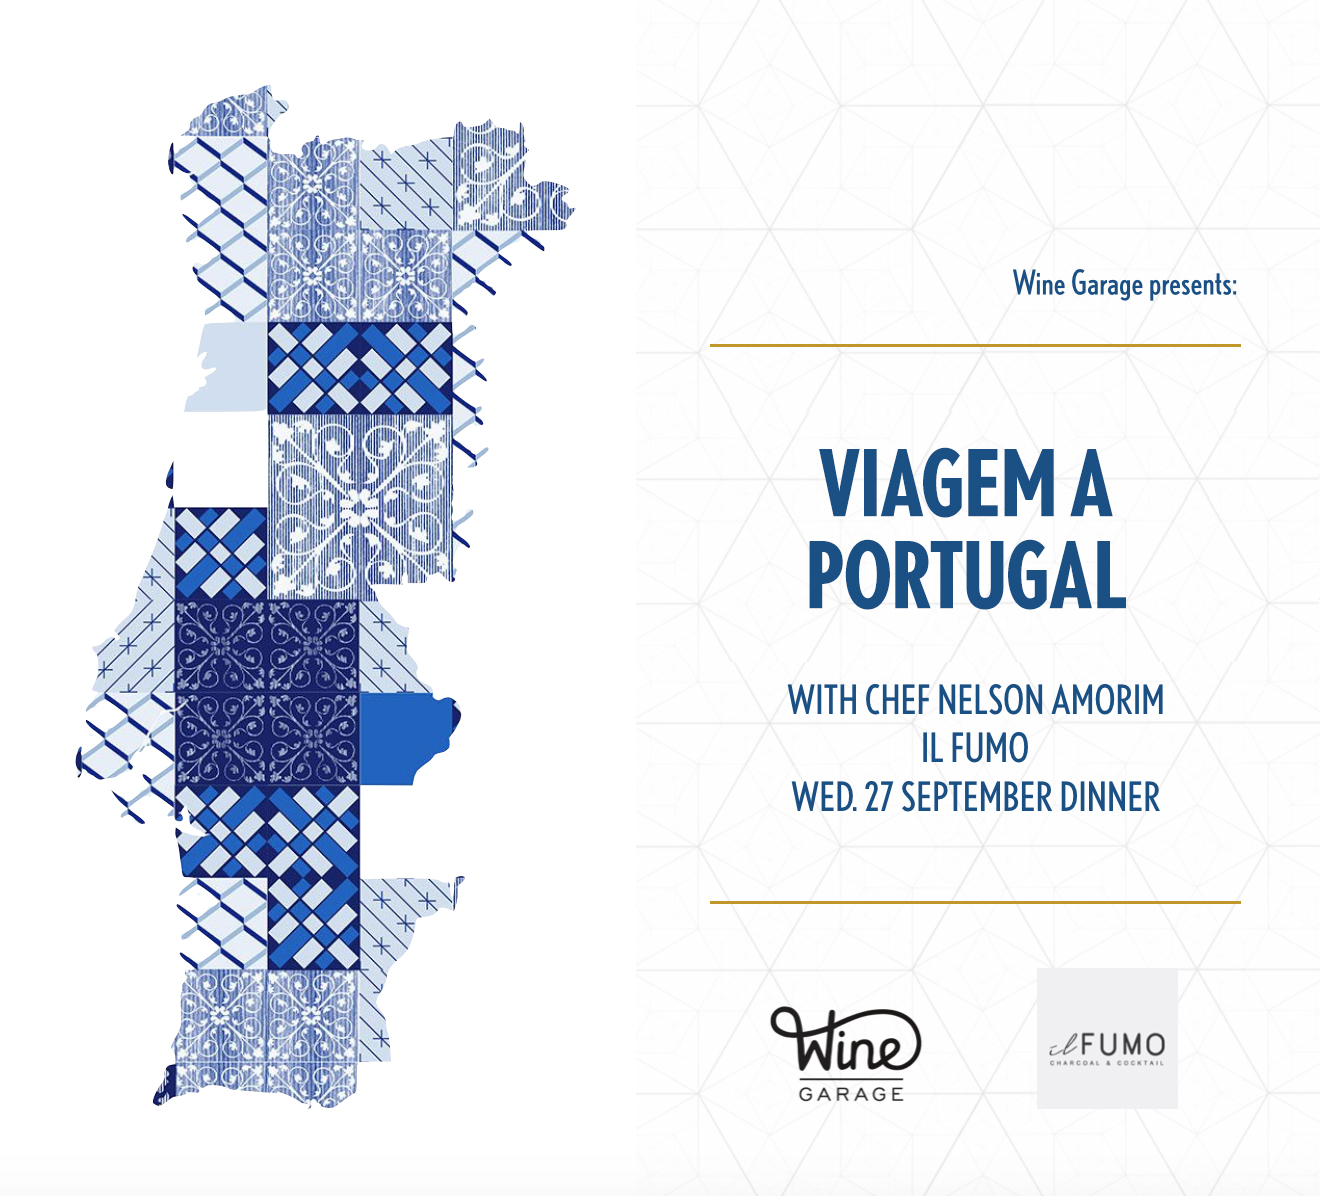 WG Il Fumo Portuguese Artwork Sep 27 2017